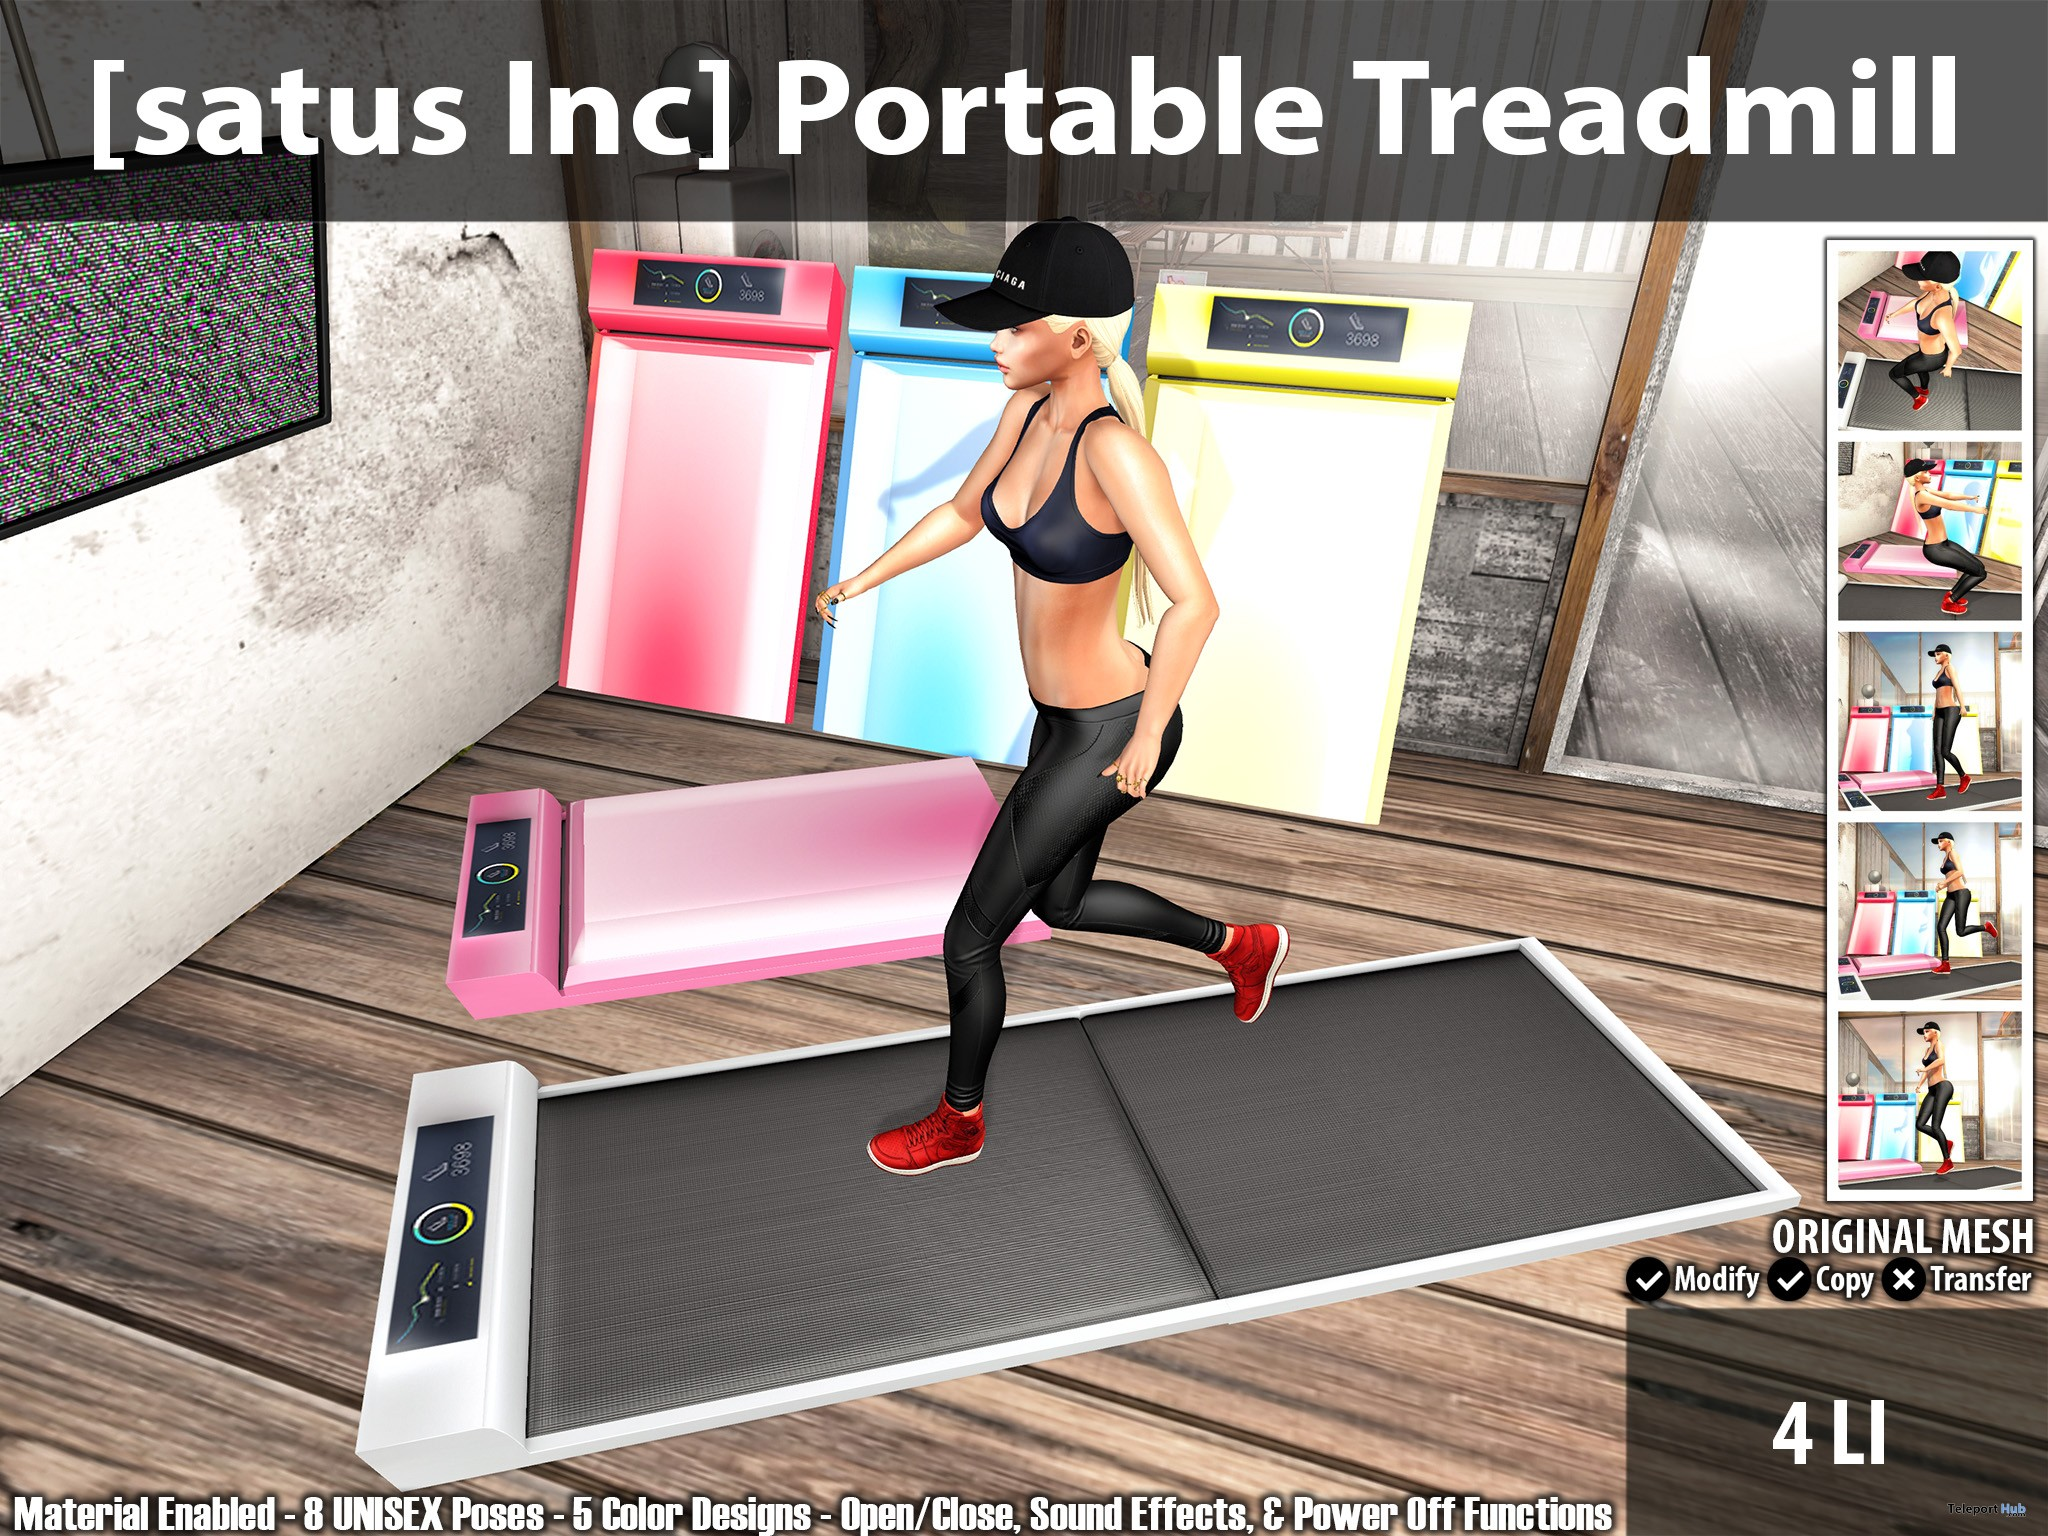 New Release: Portable Treadmill by [satus Inc] - Teleport Hub - teleporthub.com